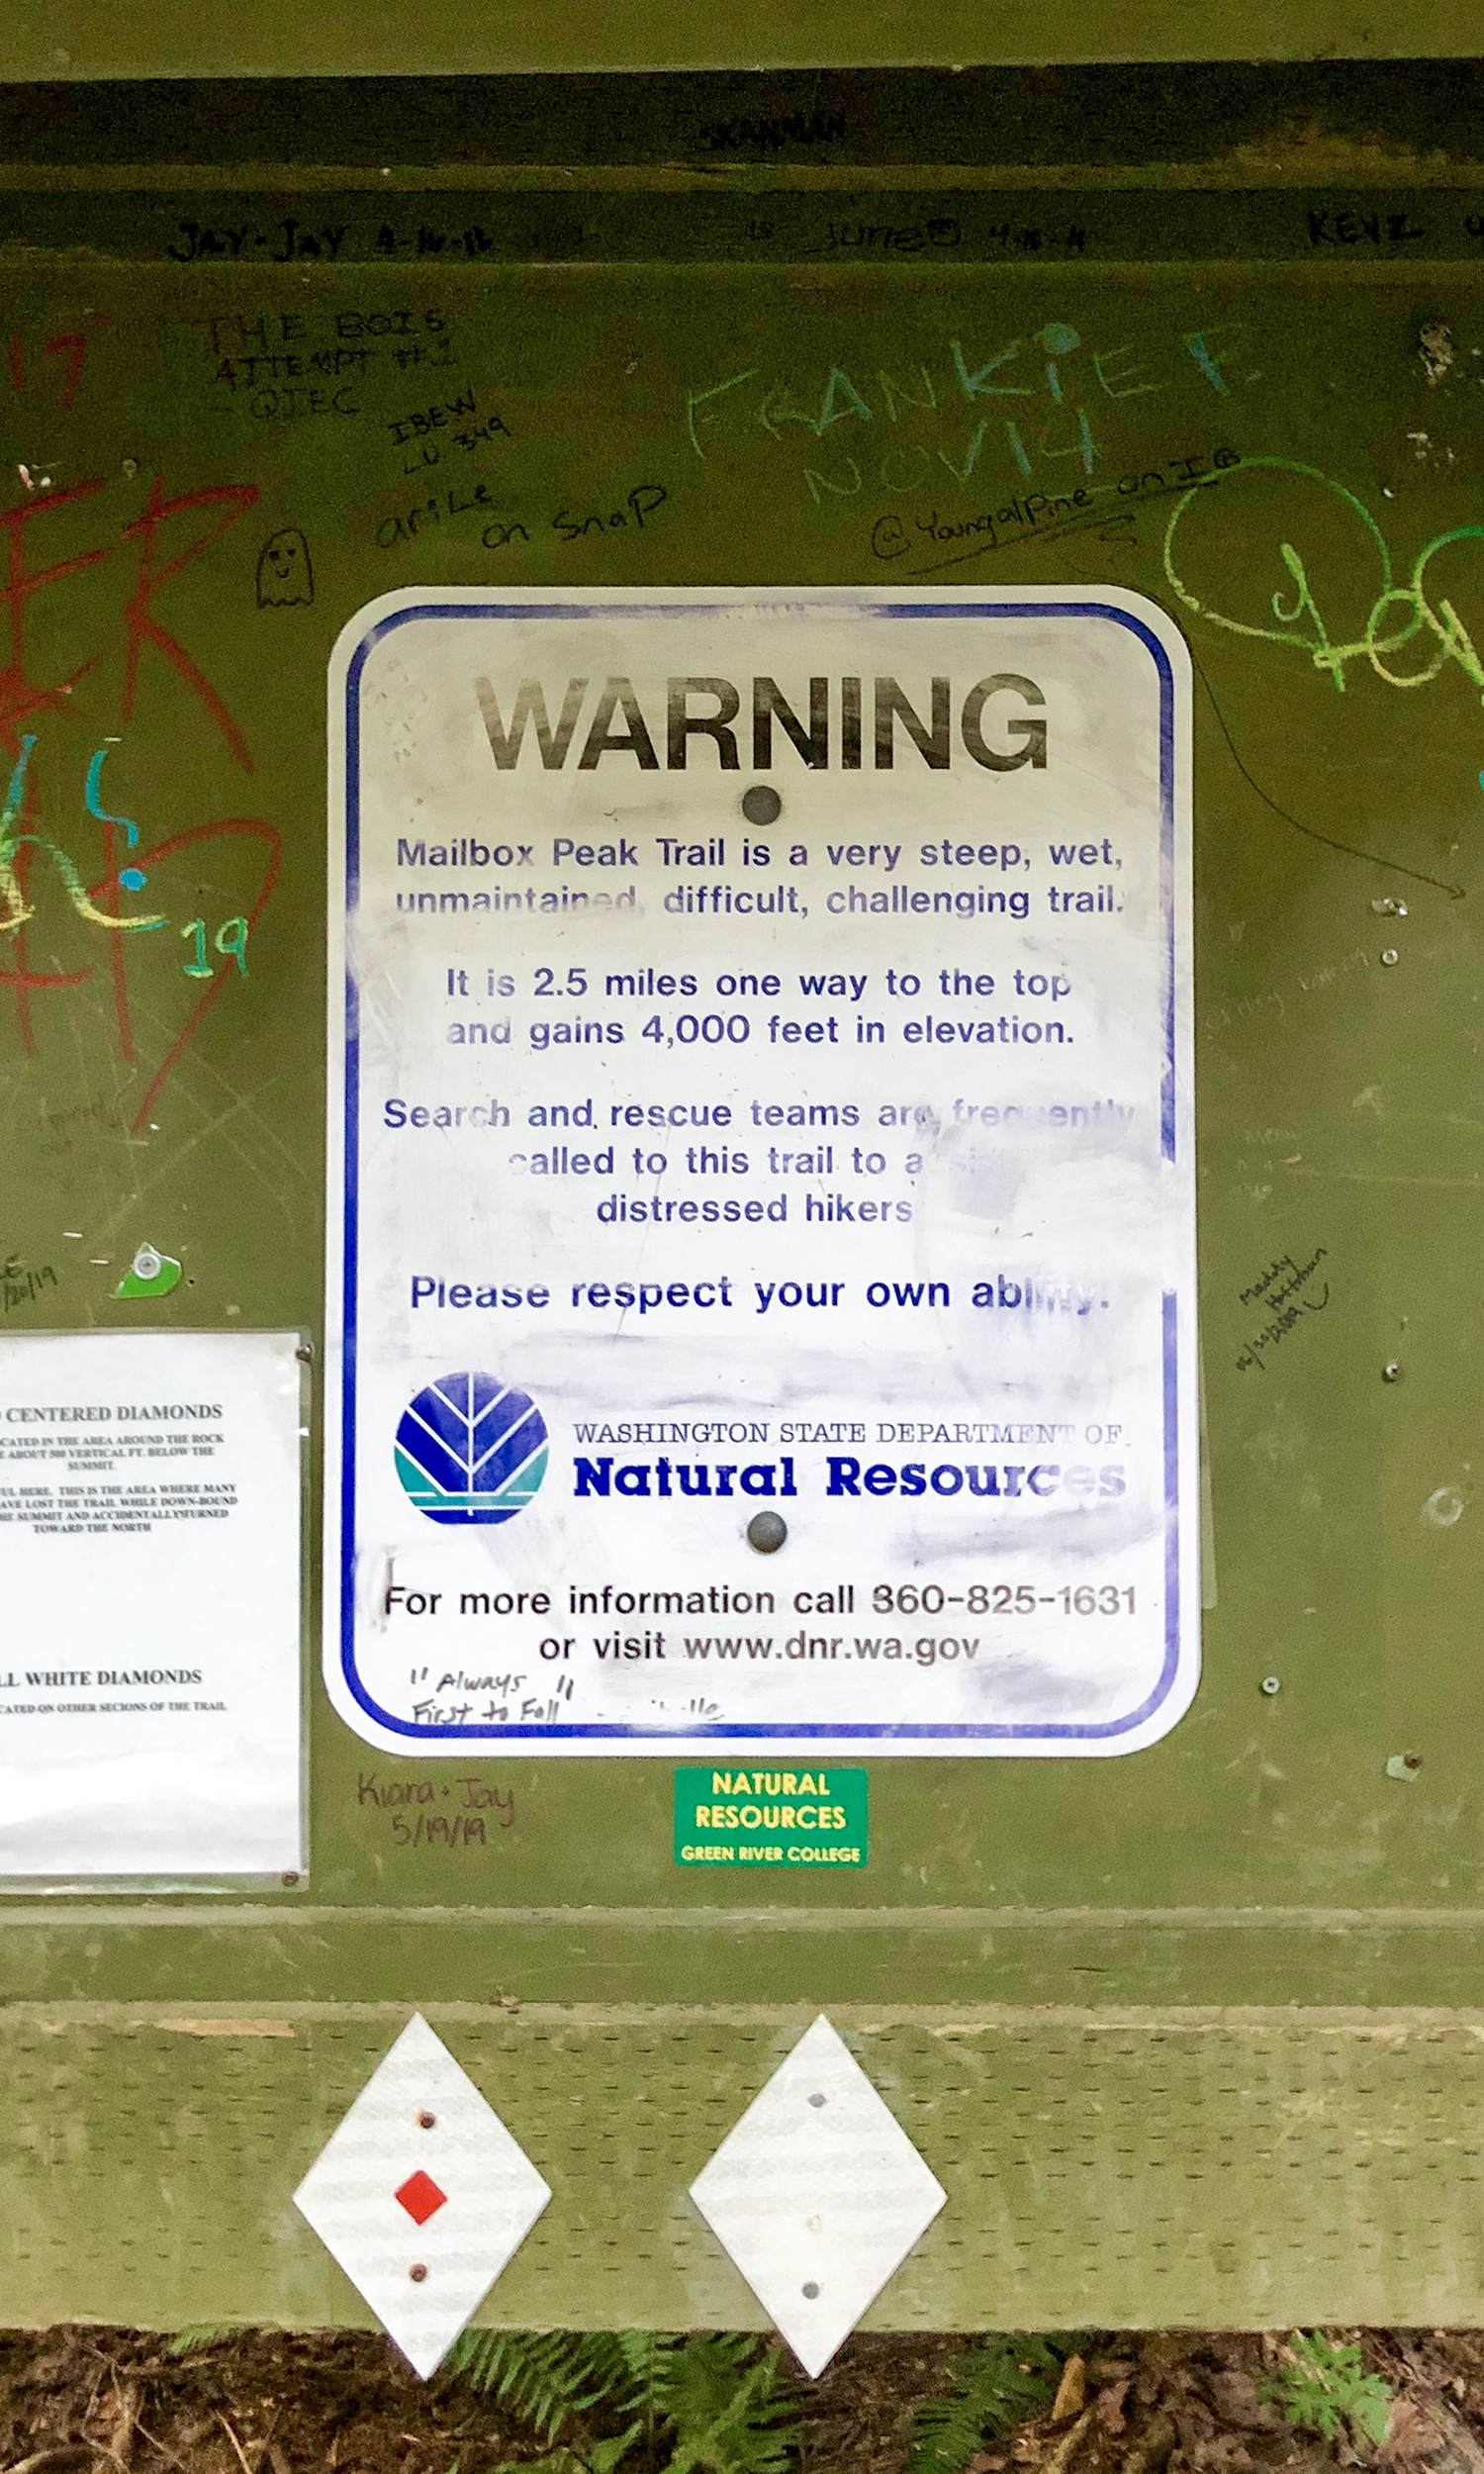 <p>The Washington State Department of Natural Resources warning sign can be a bit ominous, but completely necessary as the trail is rated difficult with steep inclines and frequent switchbacks. (Image:{&nbsp;}Rachael A. Jones / Seattle Refined){&nbsp;}</p>